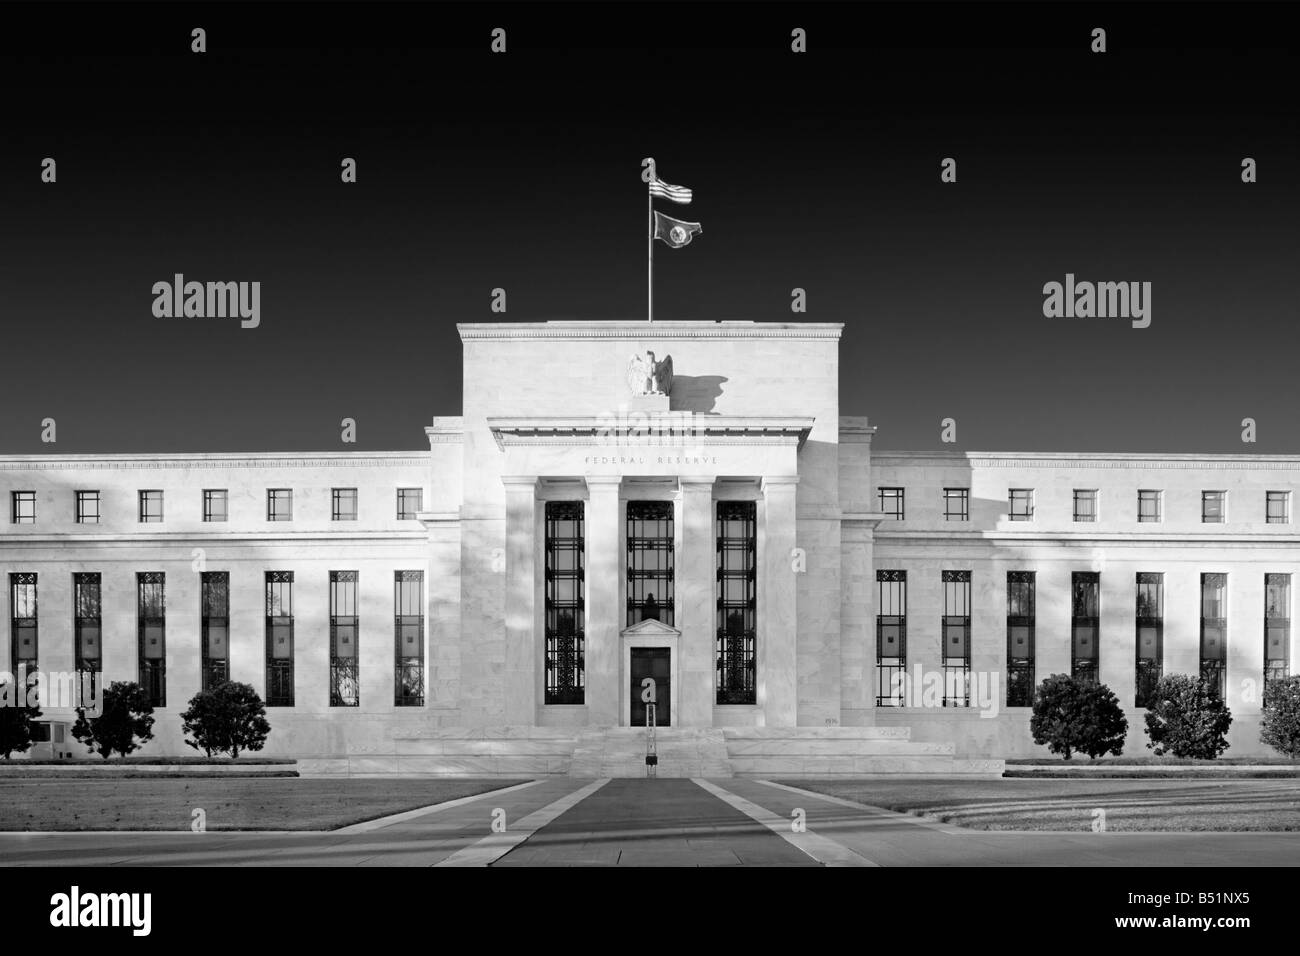 https://c7.alamy.com/comp/B51NX5/the-fed-us-federal-reserve-bank-washington-dc-usa-main-entrance-on-B51NX5.jpg